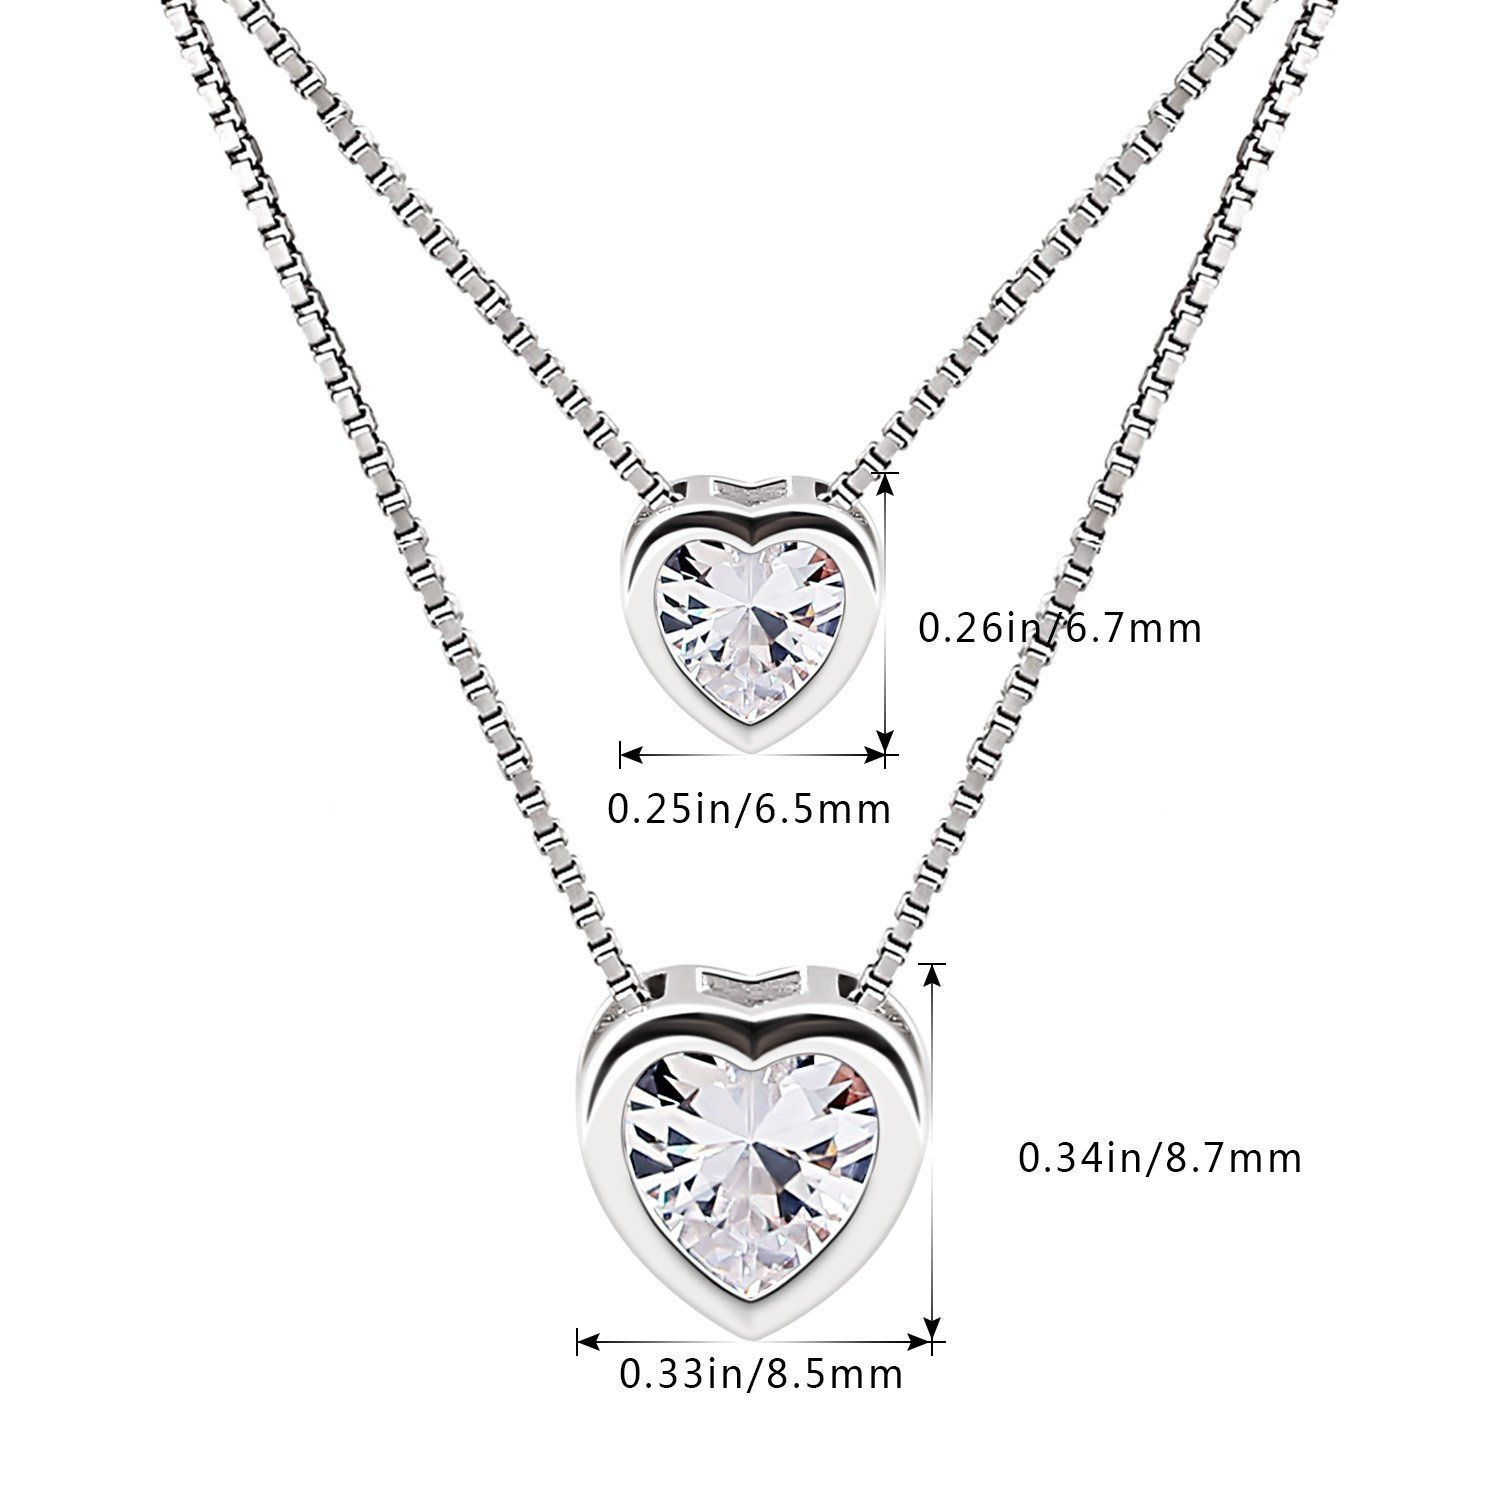 dde30baa3 B.Catcher Necklace Womens 925 Sterling Silver Cubic Zirconia Double Heart  Layer Bead Chains Necklace *** Click on the image for additional details.